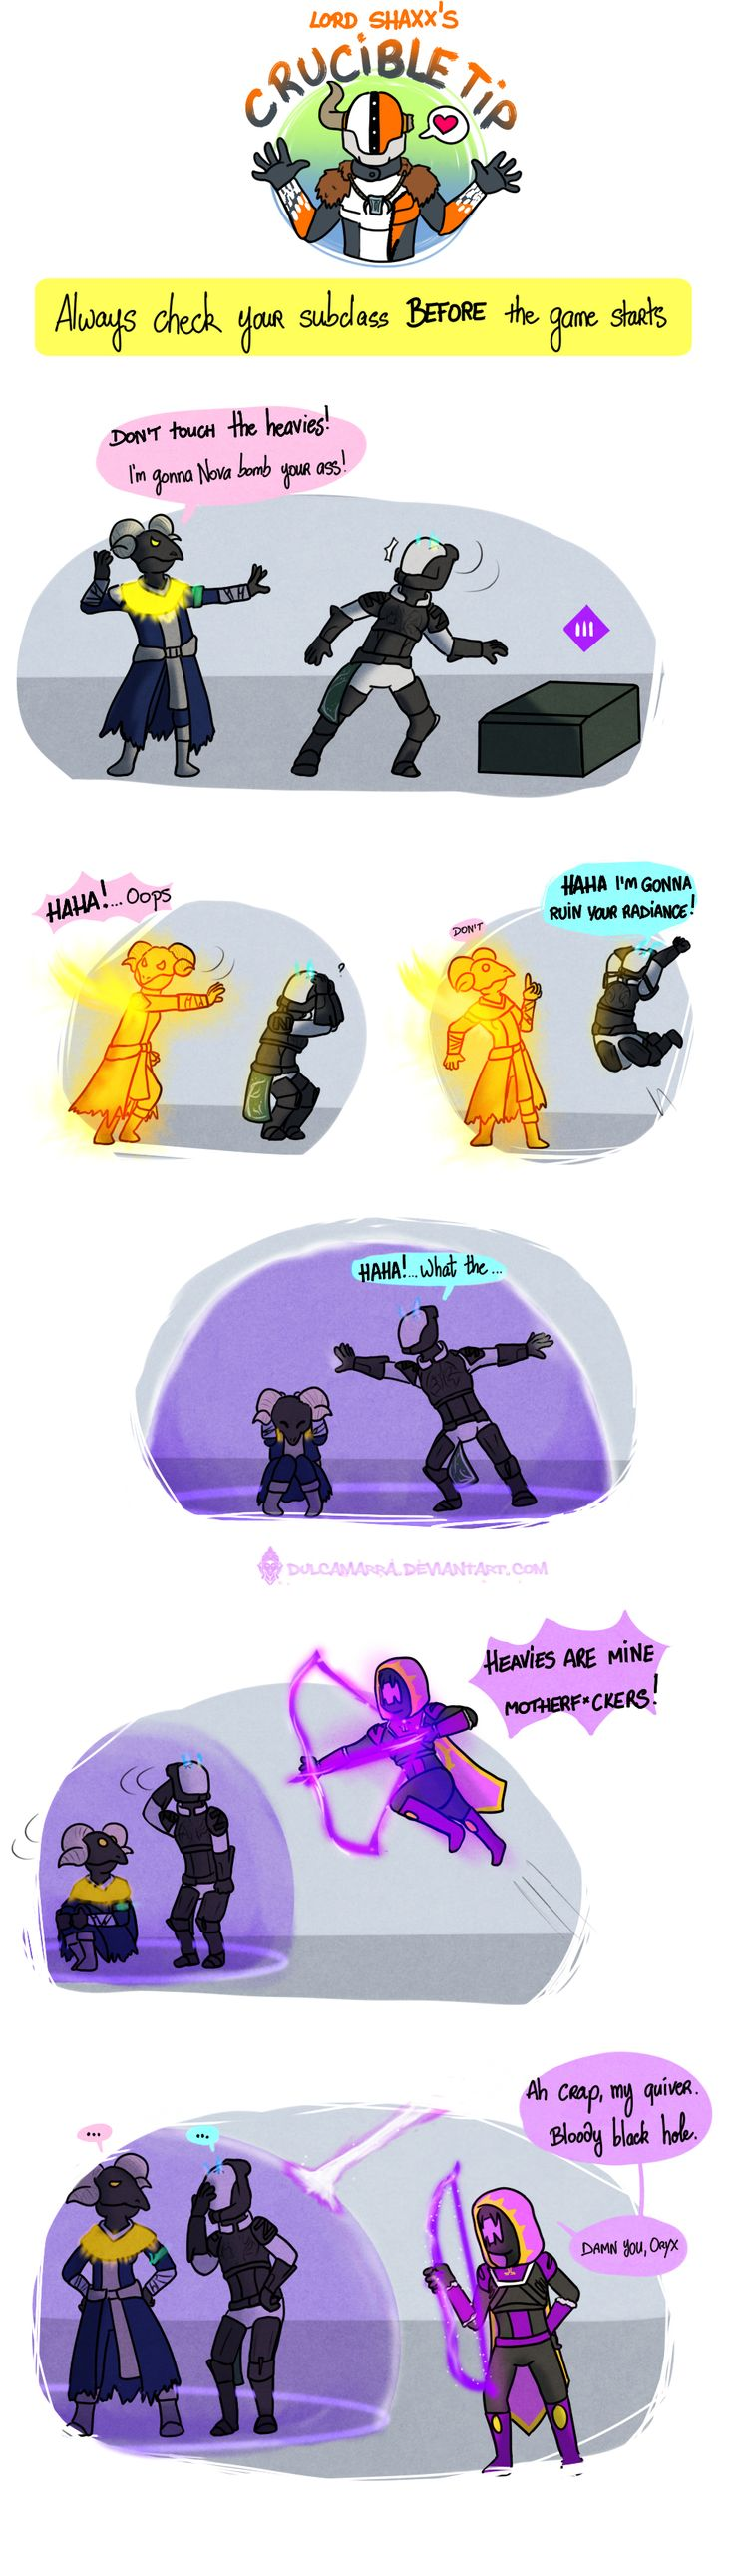 I'm the worst voidwalker you'll ever see. Destiny©Bungie